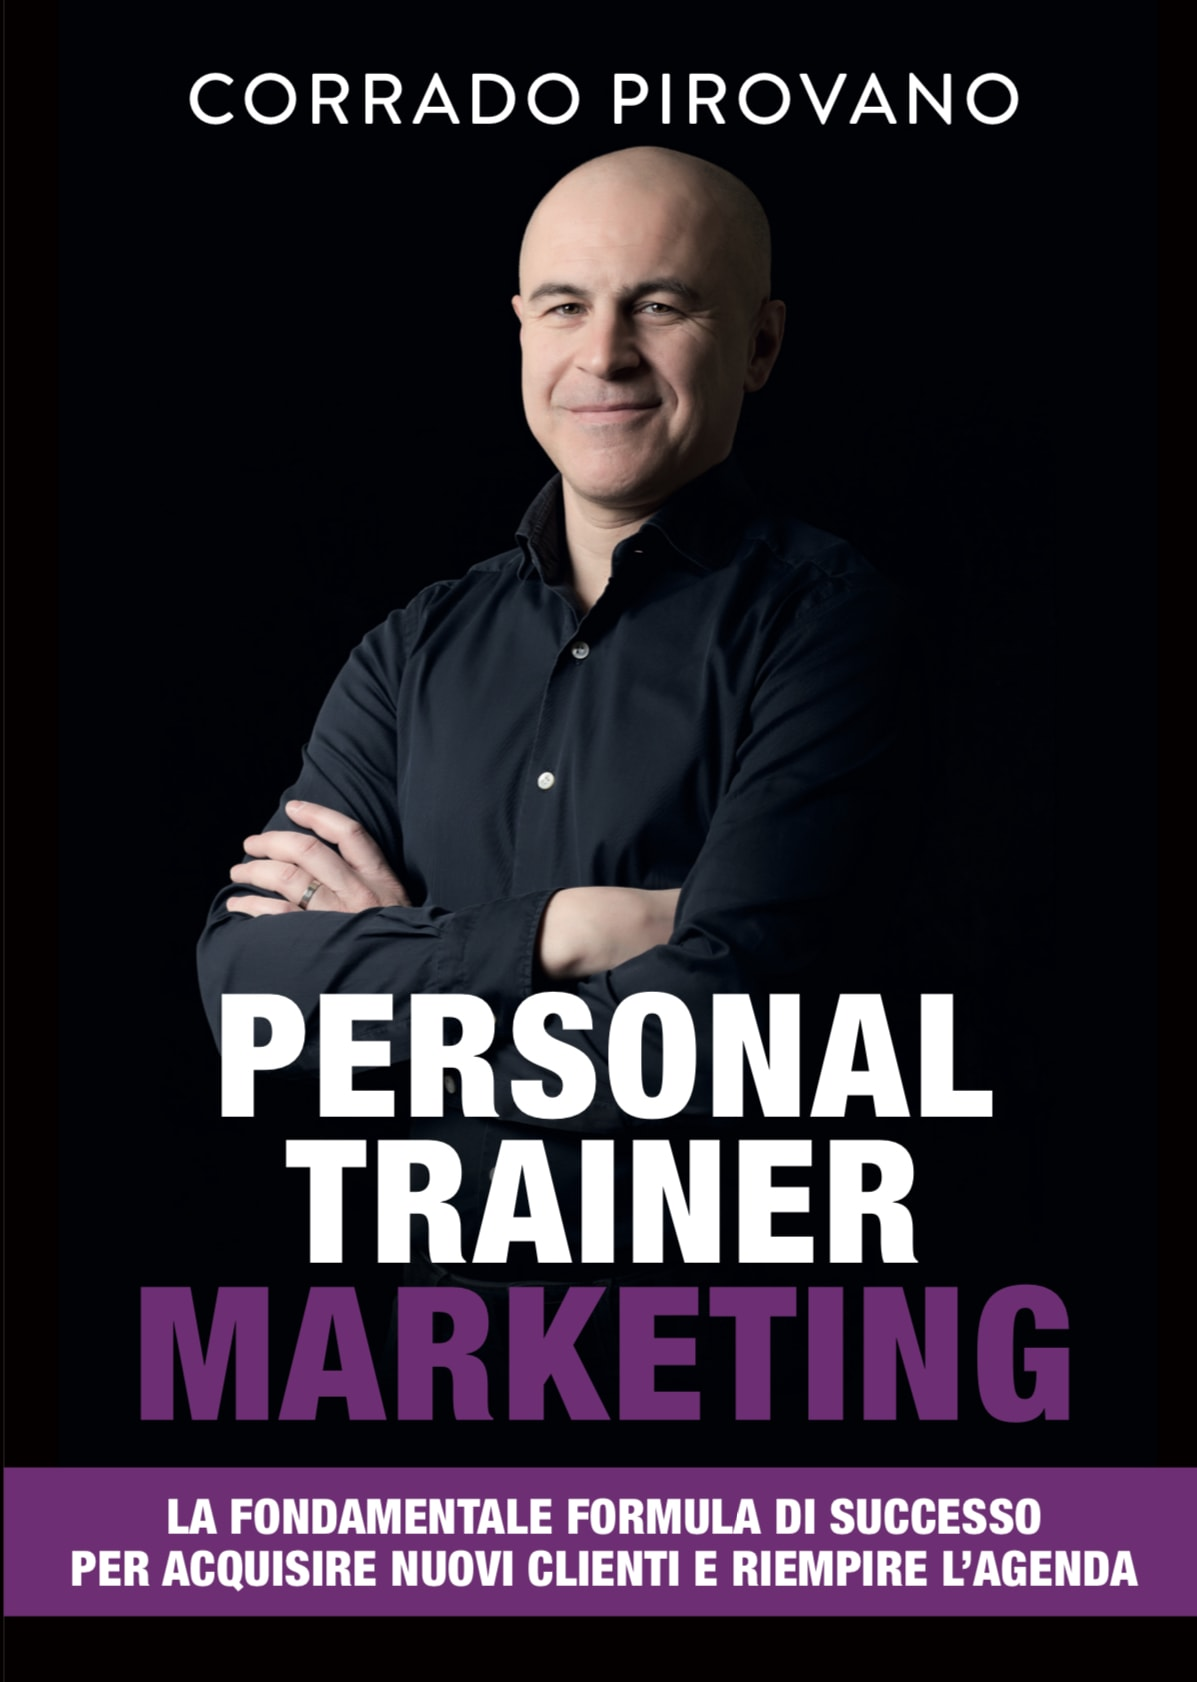 Personal Trainer Marketing - Libro Corrado Pirovano